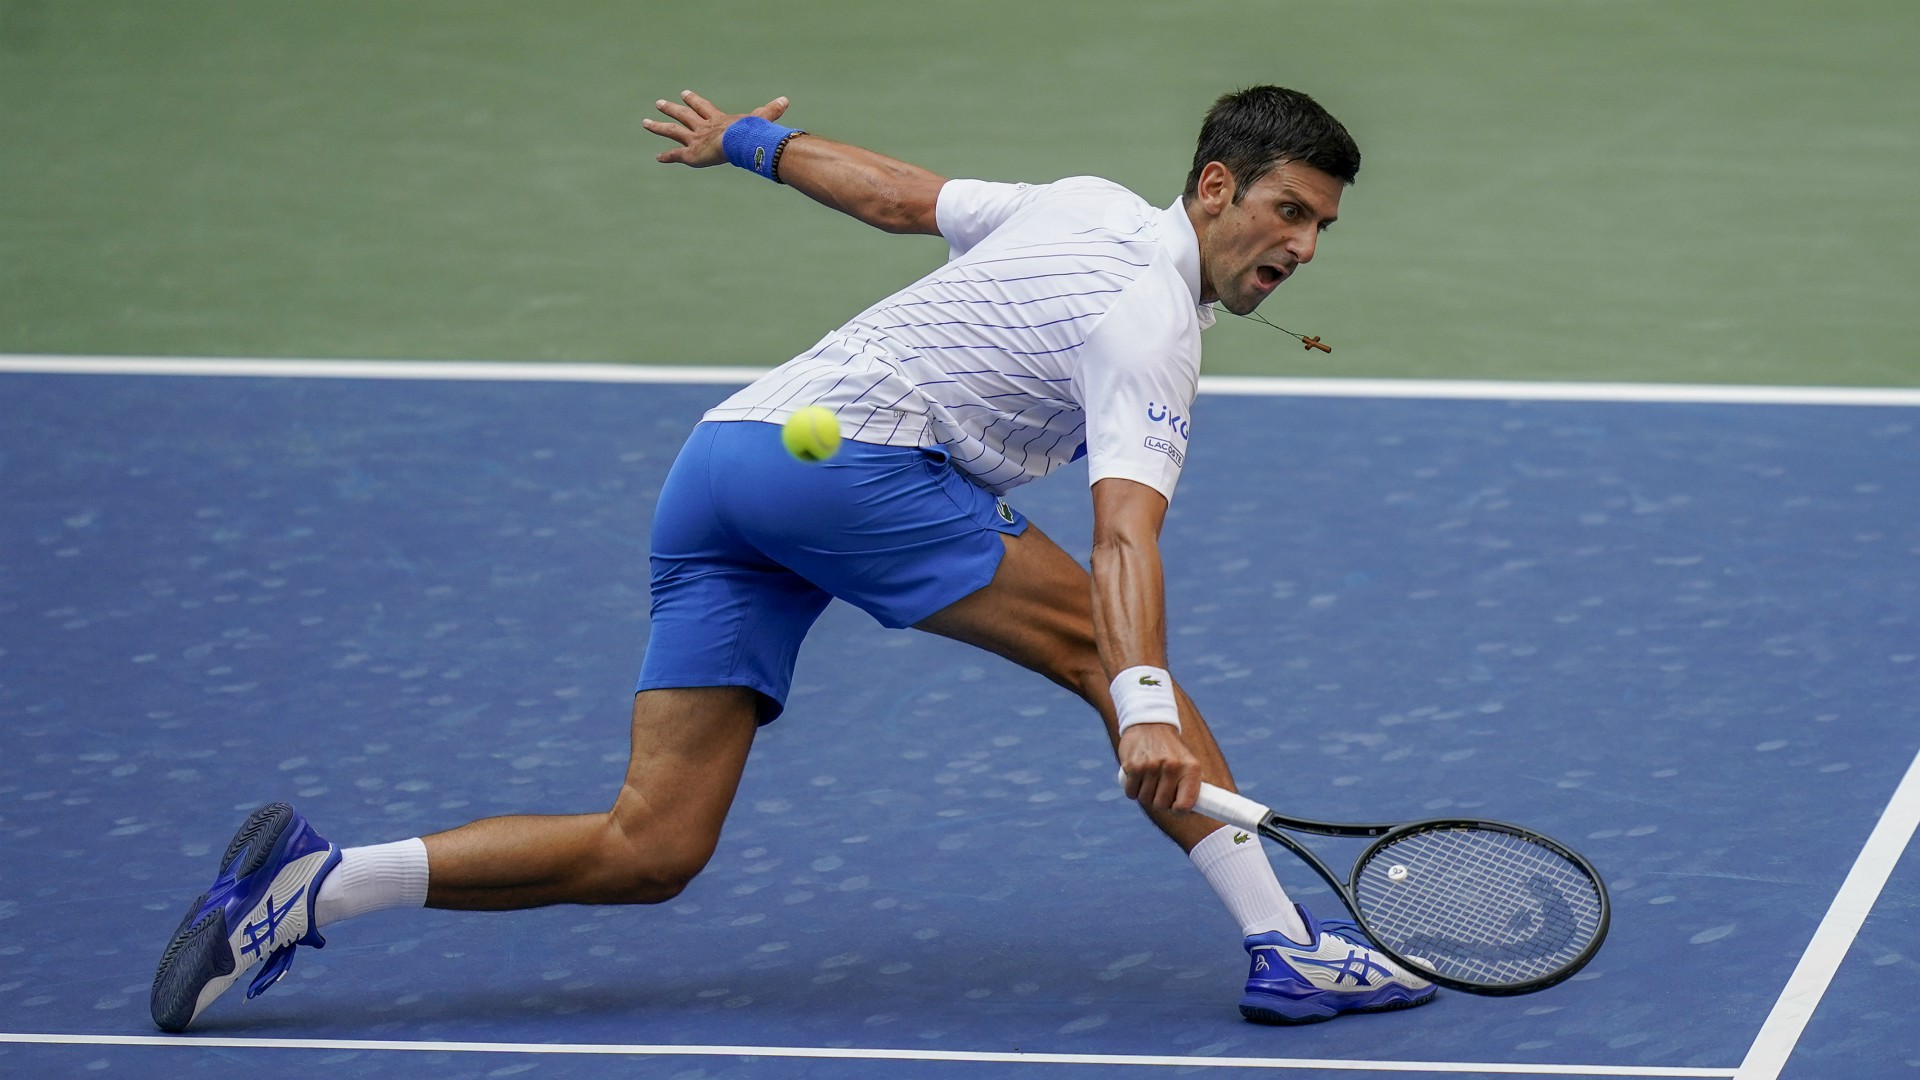 Djokovic Out Of Us Open After Hitting Line Judge With Ball Woodtv Com